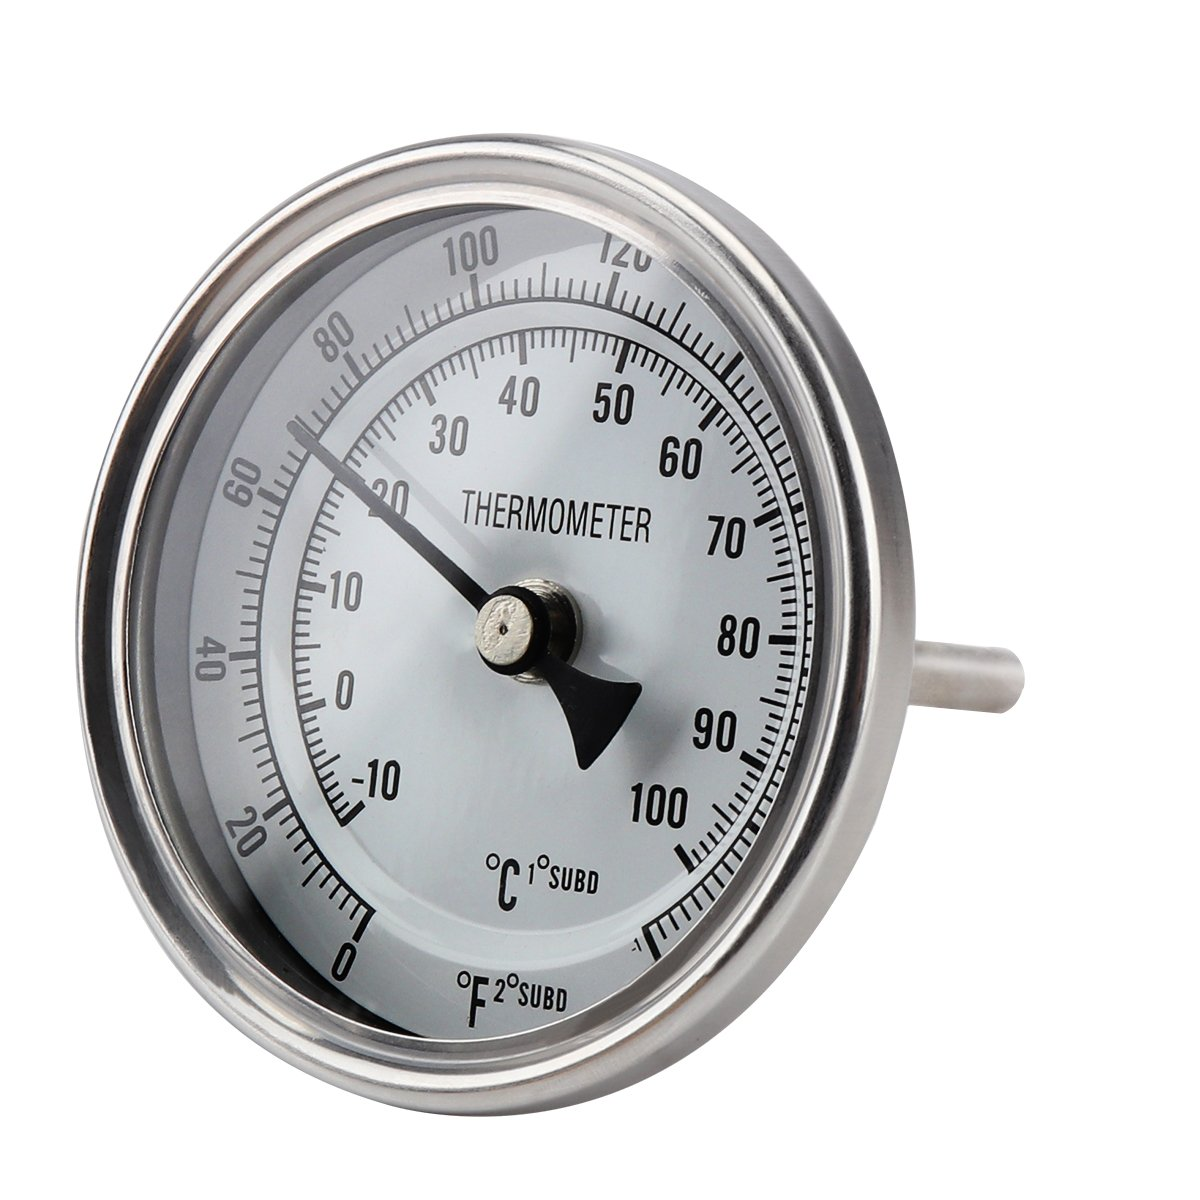 Ferroday Stainless Steel Thermometer Dial Thermometer 1/2 NPT Homebrew Kettle Thermometer With Lock Nut & O-ring ( 0-220º F, -10-100º C) Welbrew COMINHKPR127442